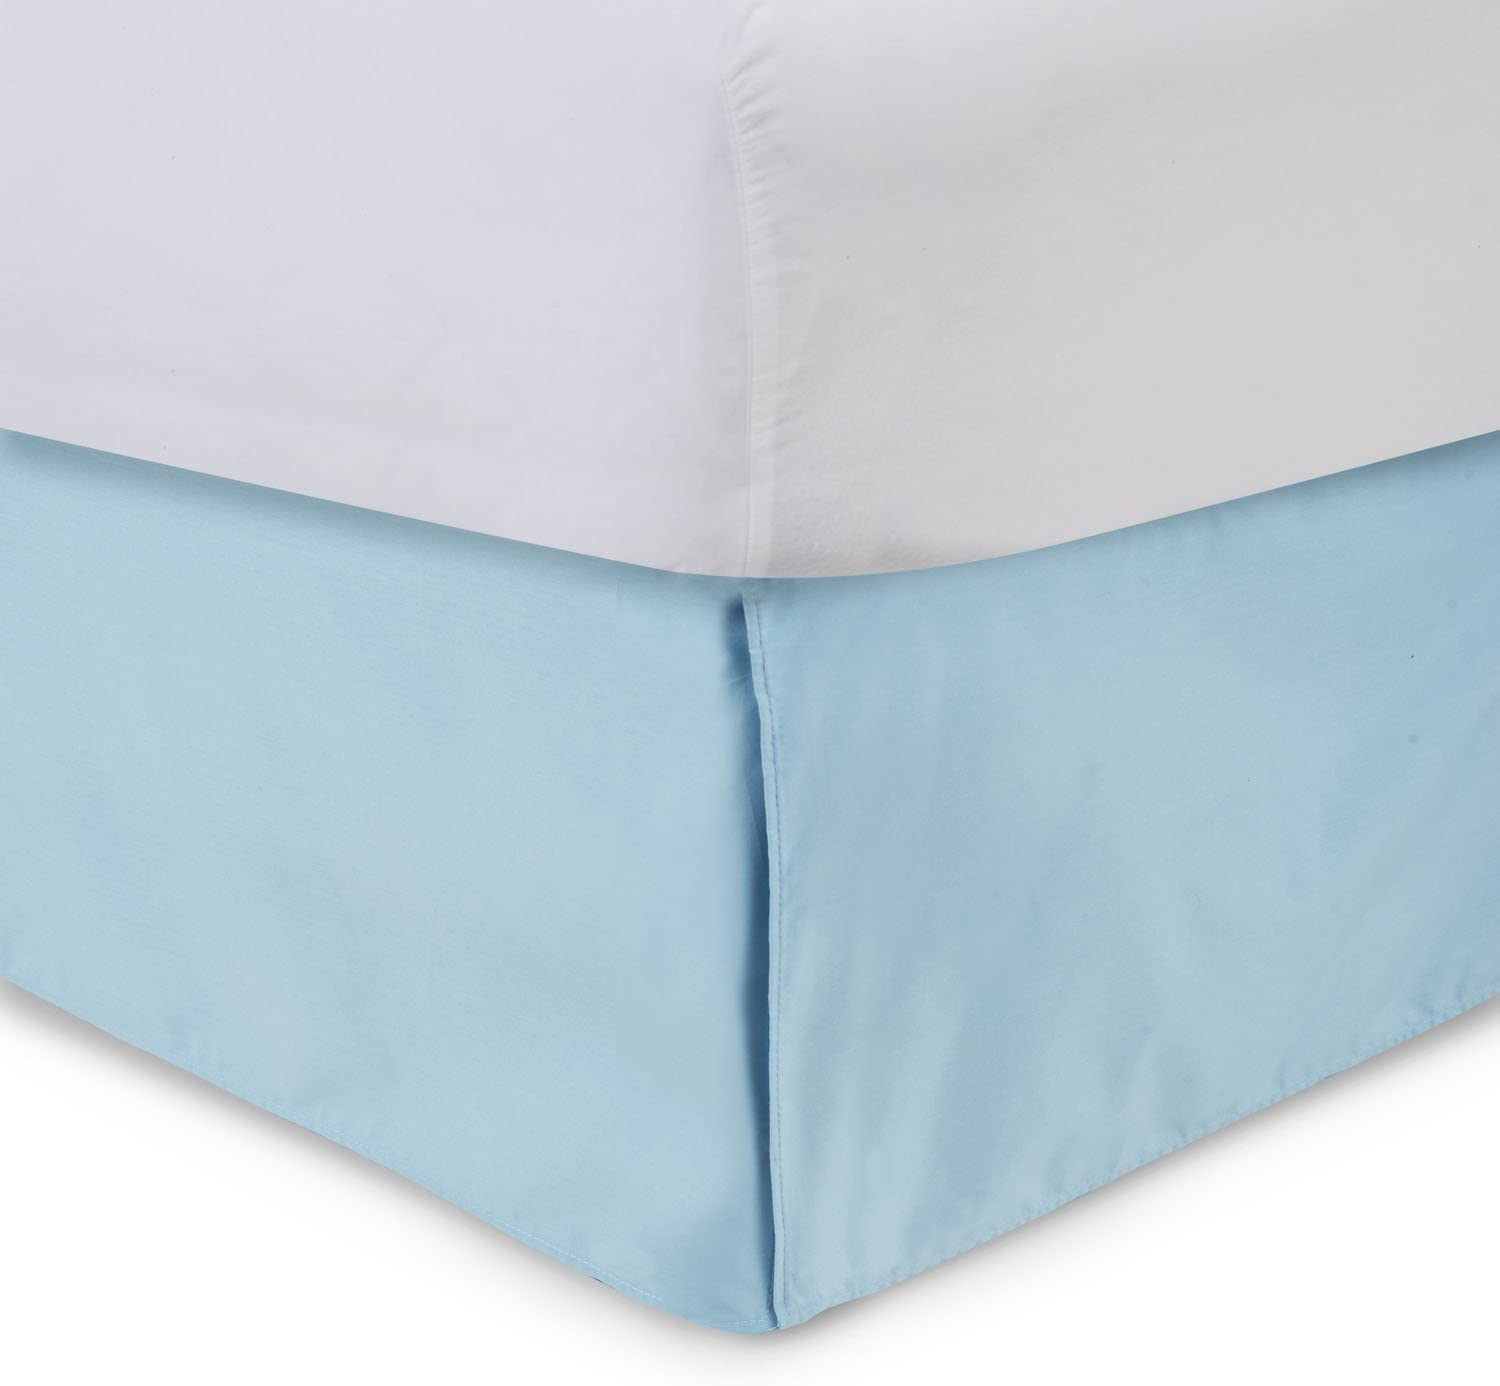 Harmony Lane Tailored Bed Skirt - 14 inch Drop, Porcelain Blue, King Bedskirt with Split Corners (Available in and 16 Colors)